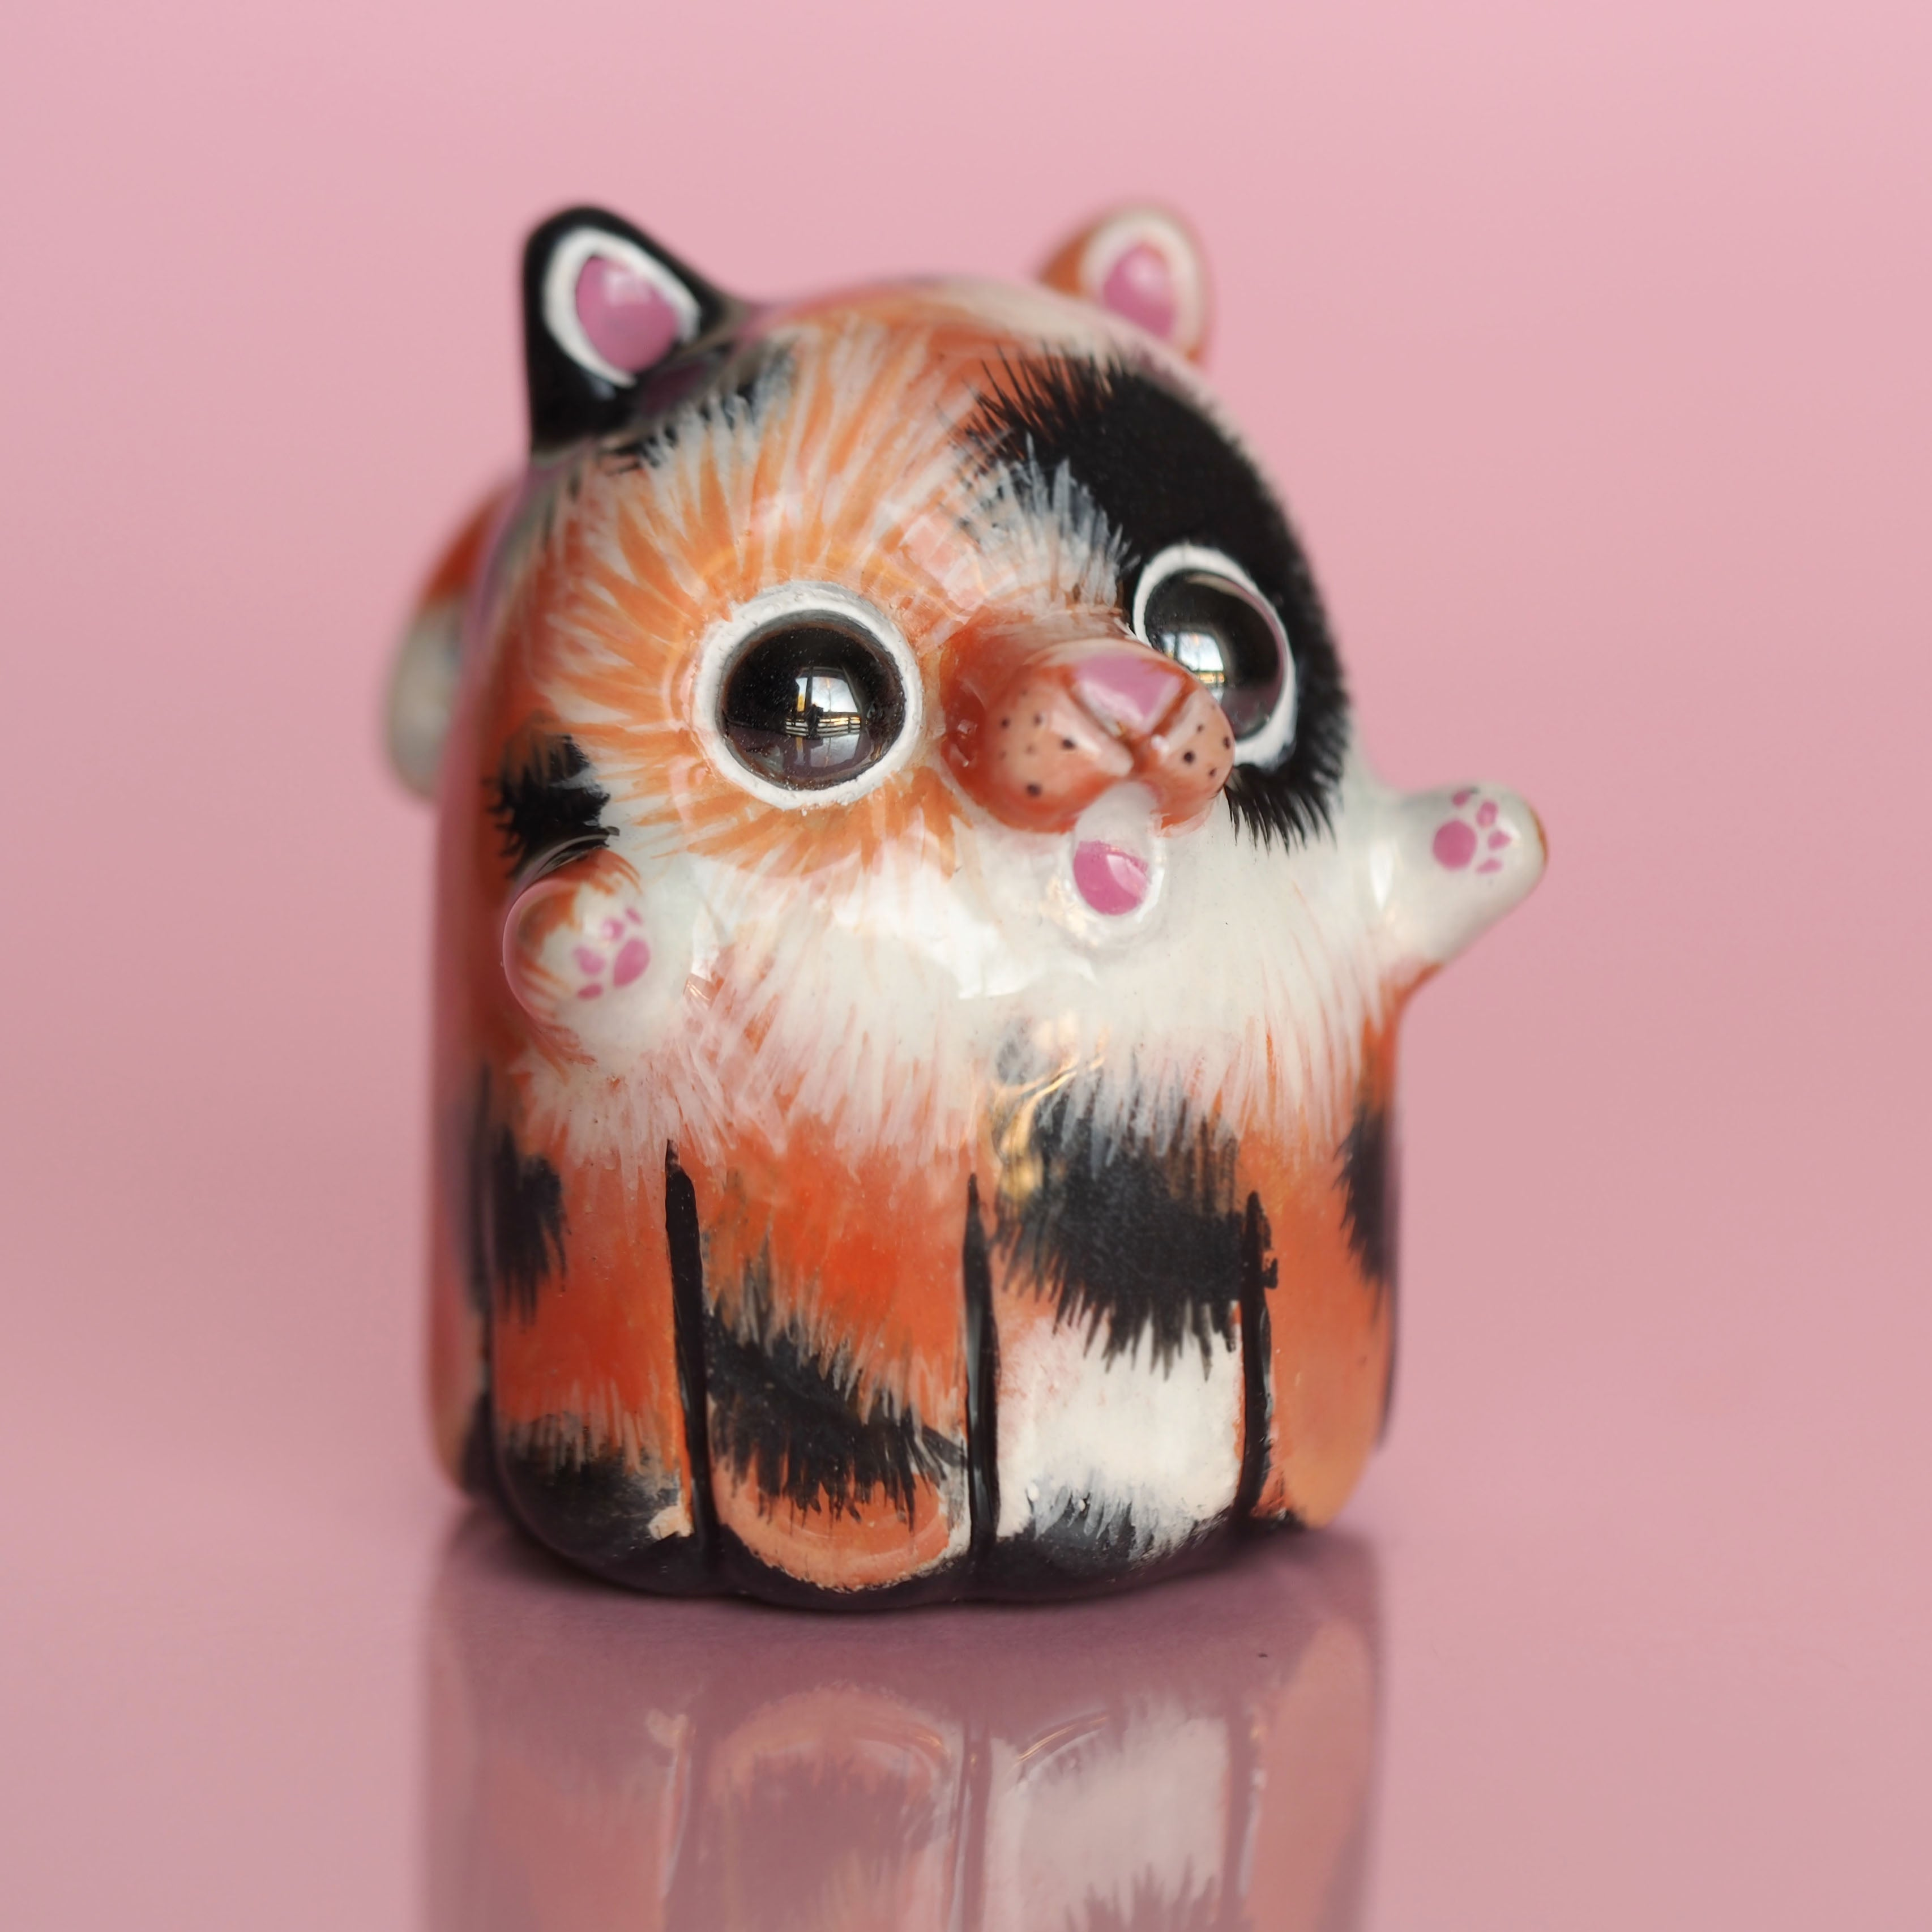 Kitty ghostie sculpture, Calico